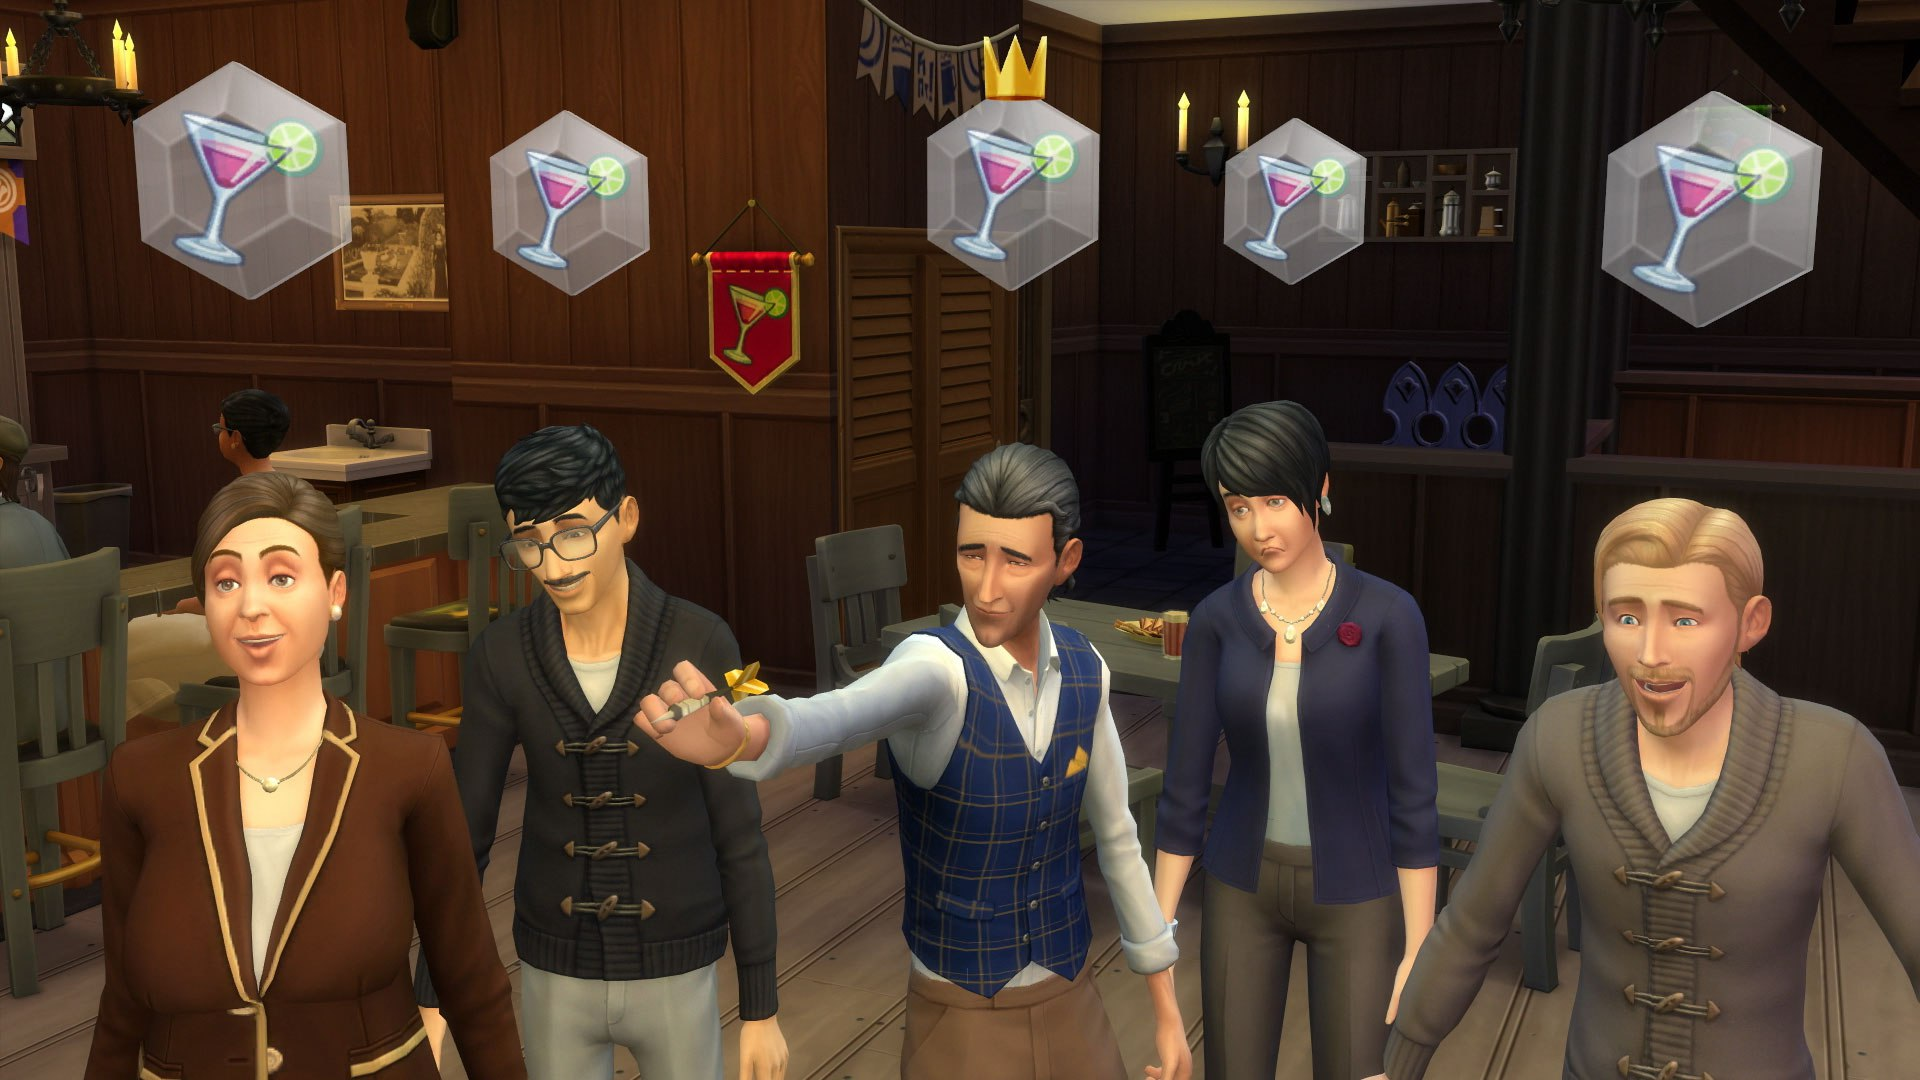 sims 4 get together, get together, best sims expansions